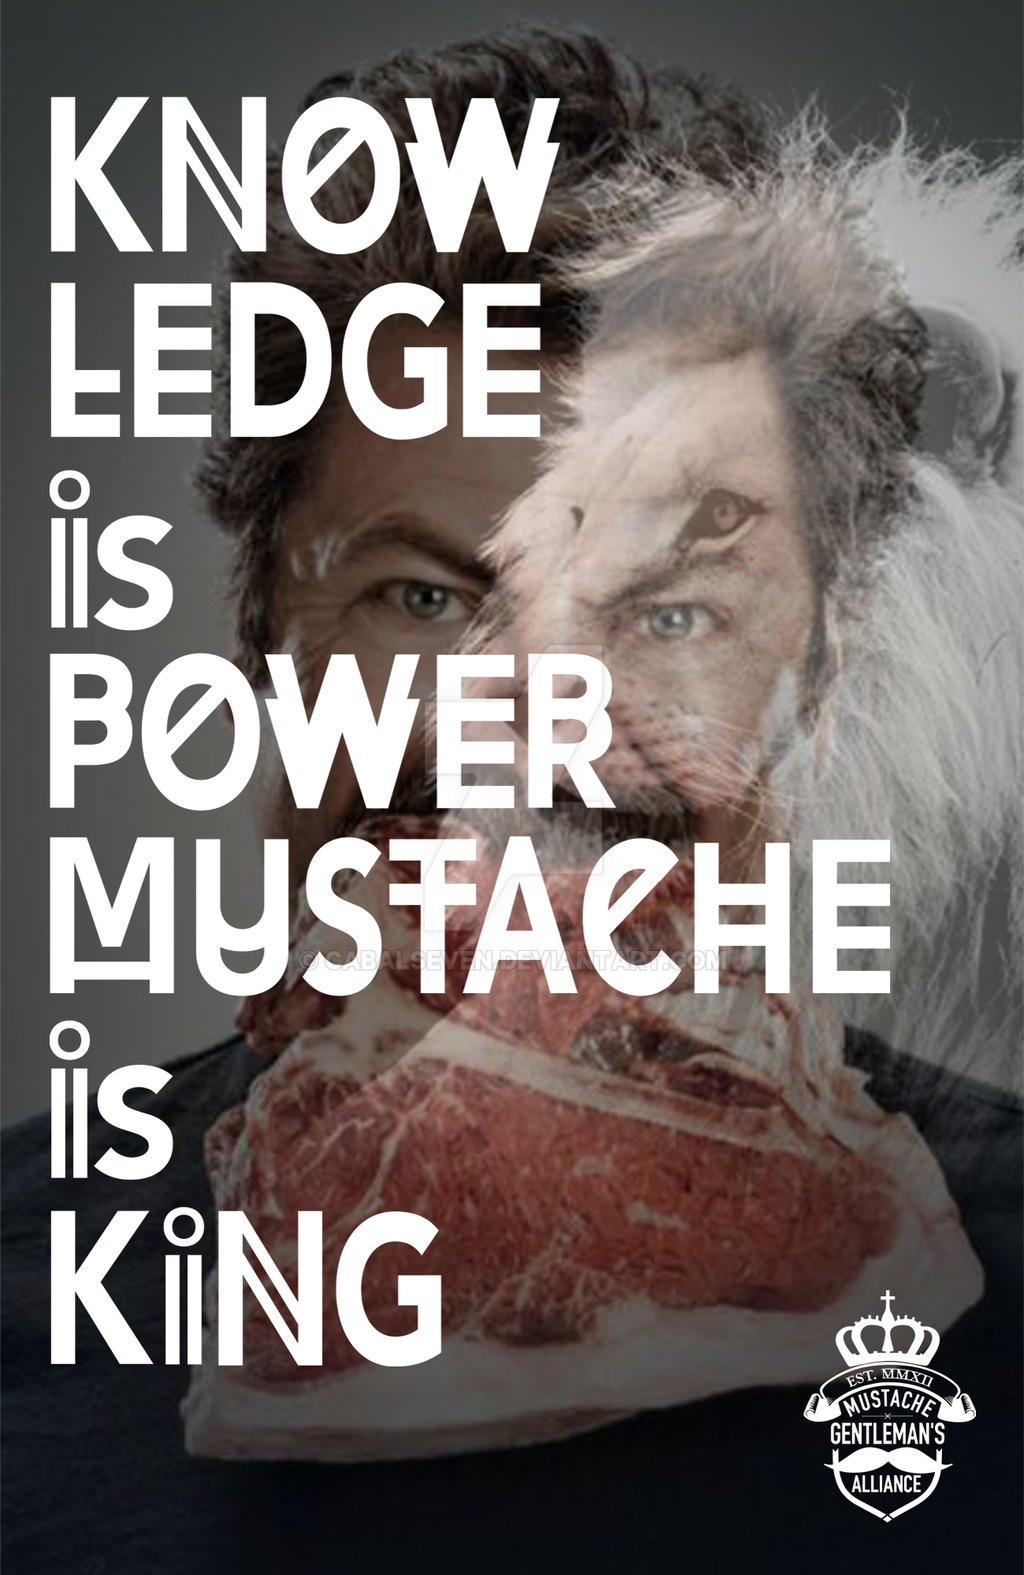 Swanson - Mustache is King by CabalSeven